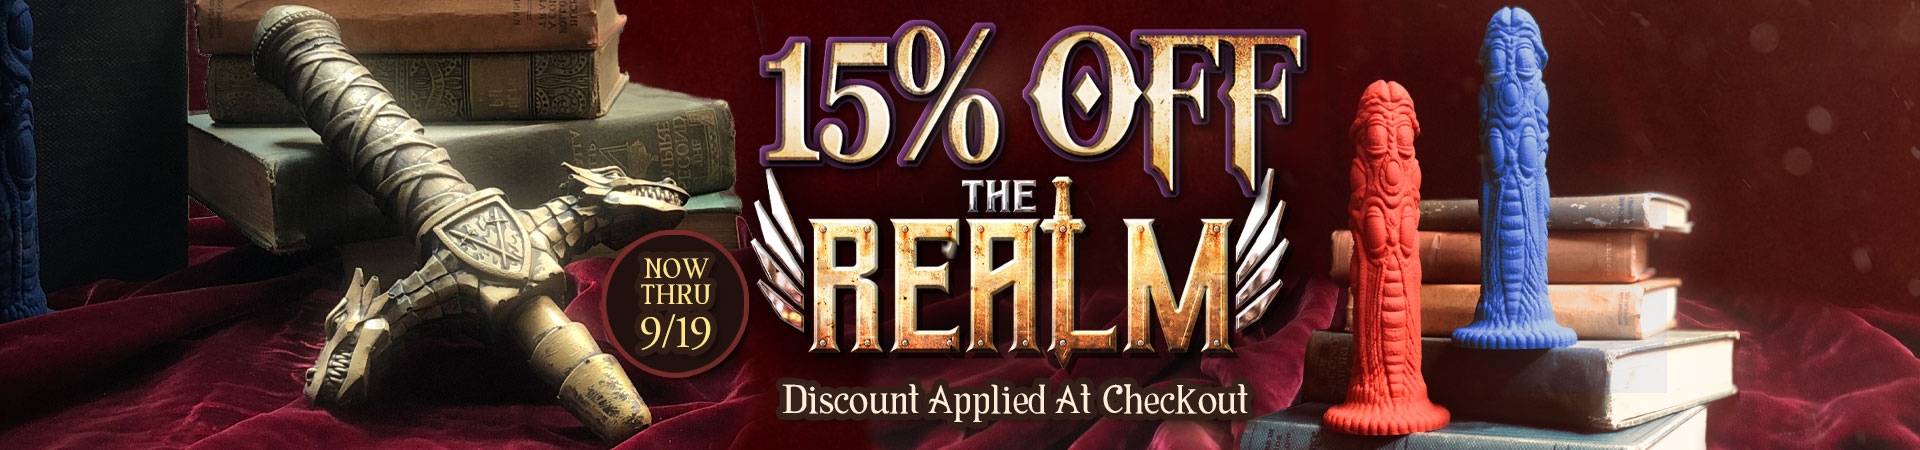 Get 15% Off The Realm - Now Thru 9/19 - Discount Applied At Checkout